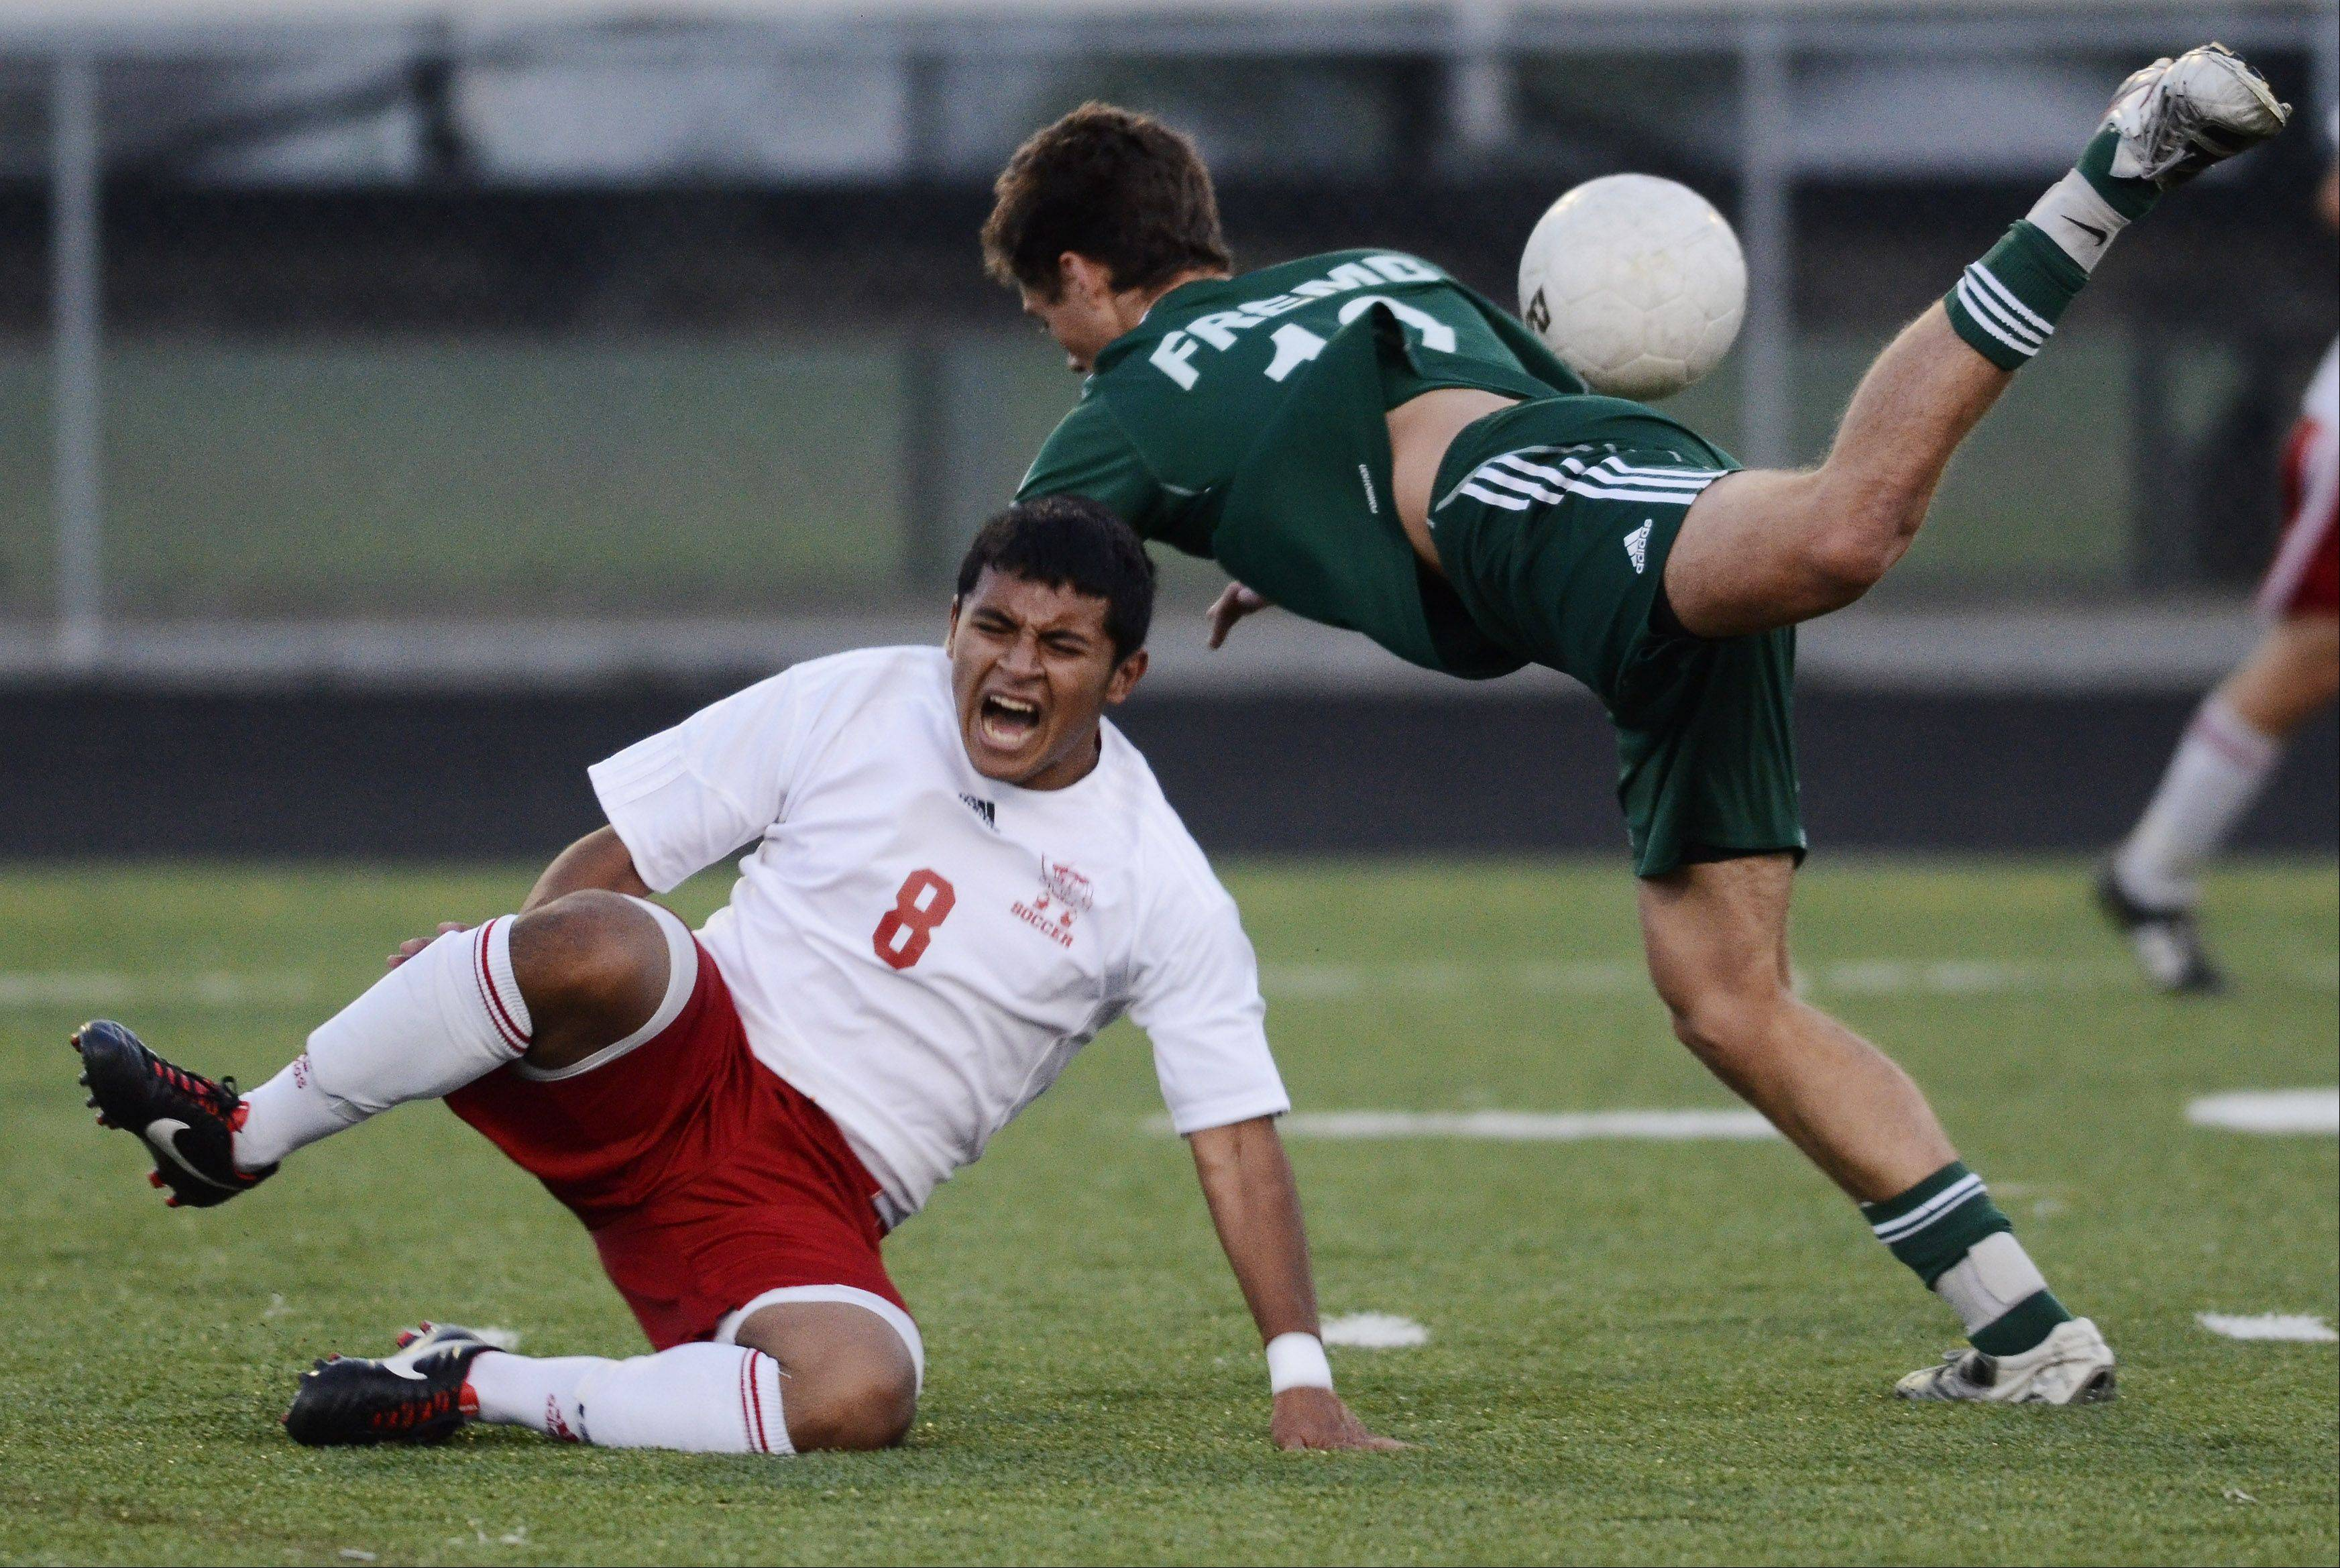 Palatine's Cesar Valdez, left, and Fremd's Michael Debellis make contact while in pursuit of the ball during Wednesday's game.